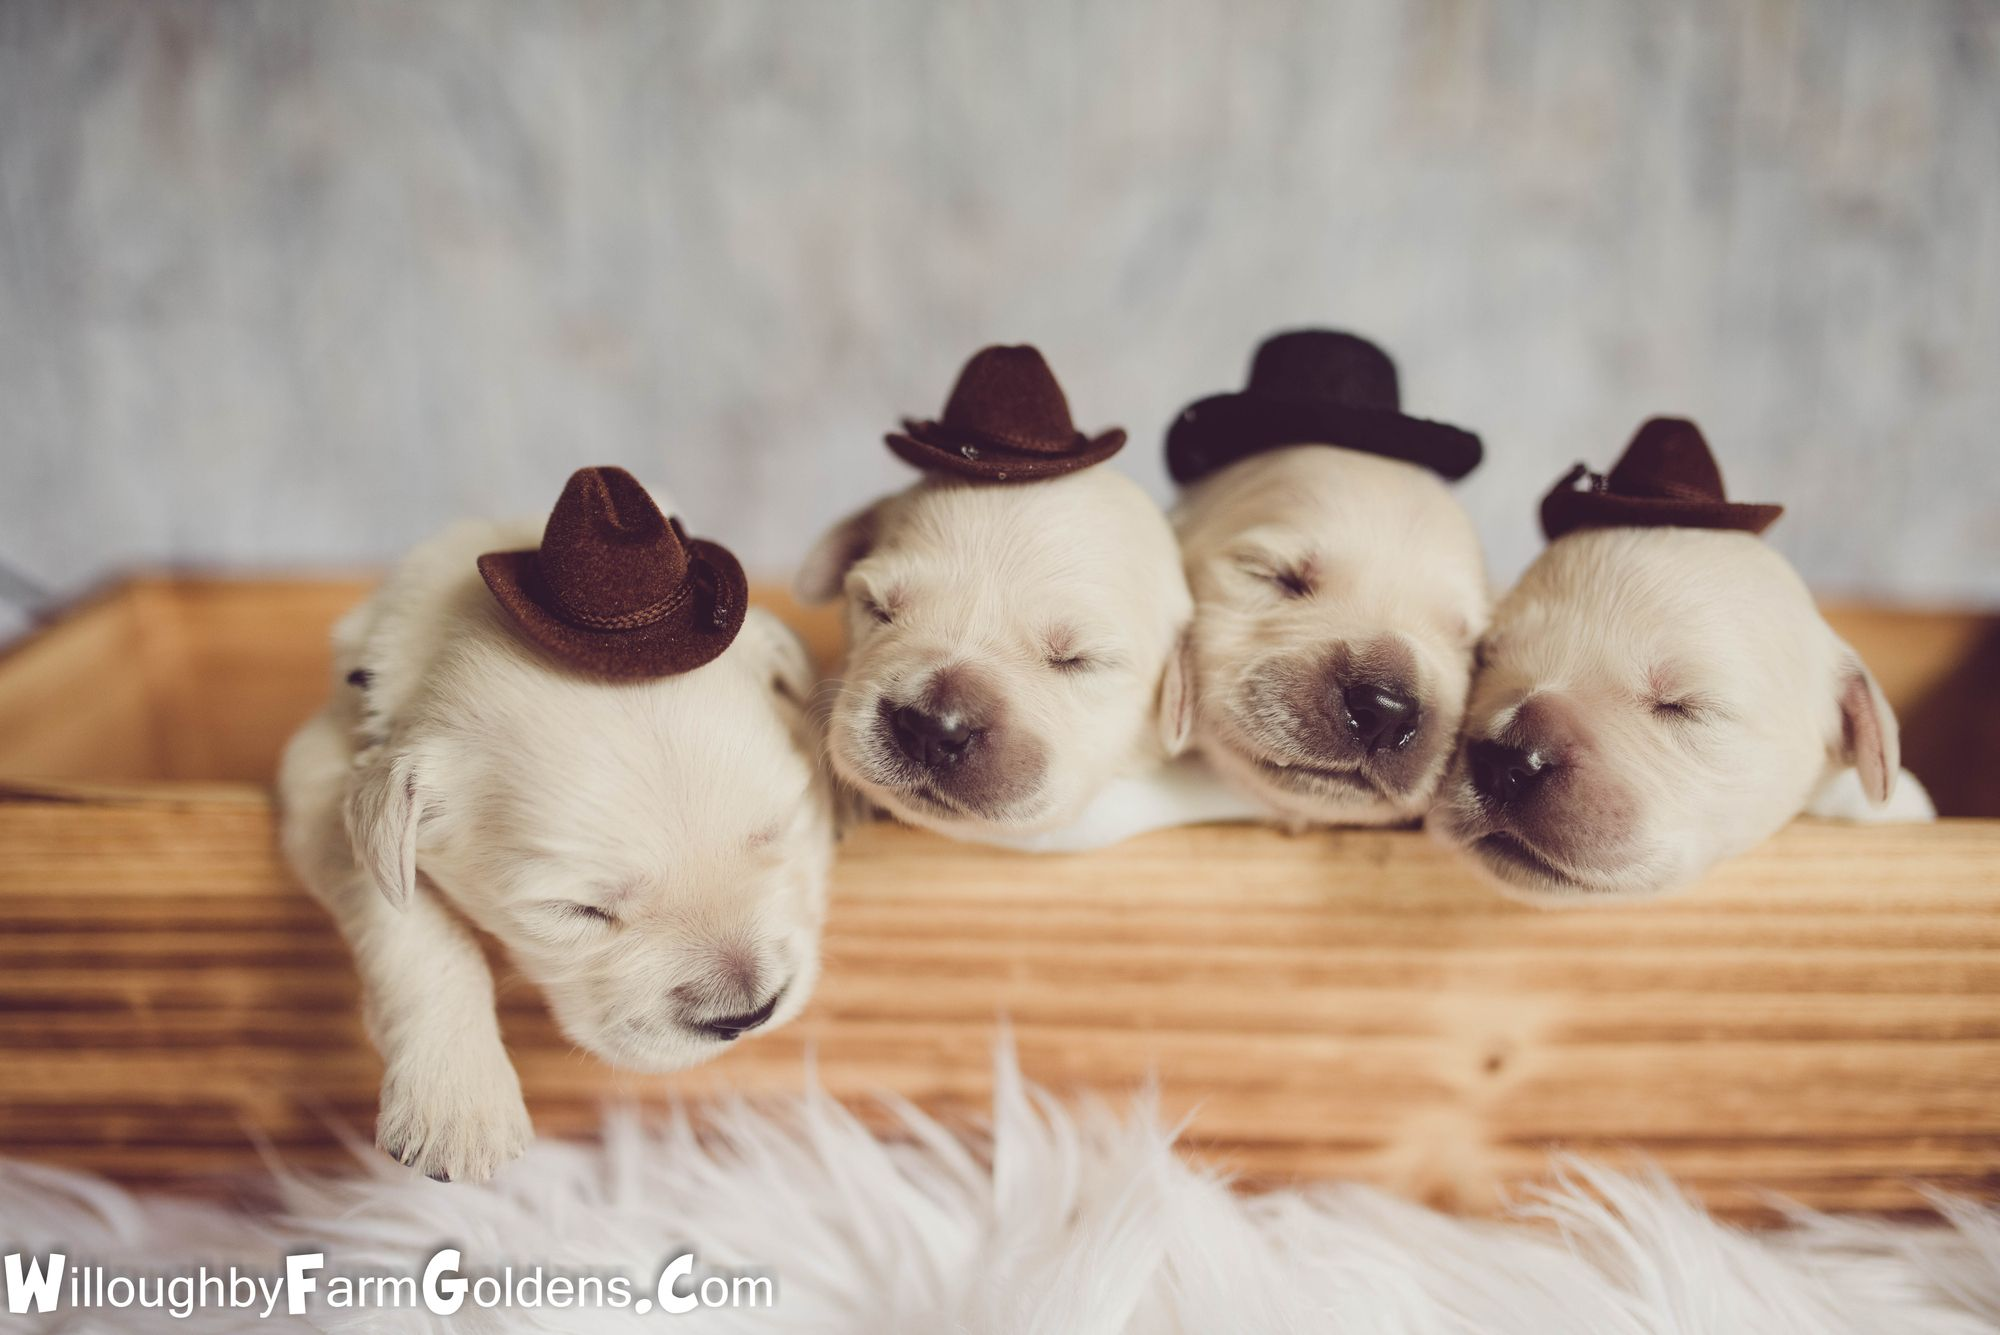 Newborn Puppies In Cowboy Hats Can You Even Handle This